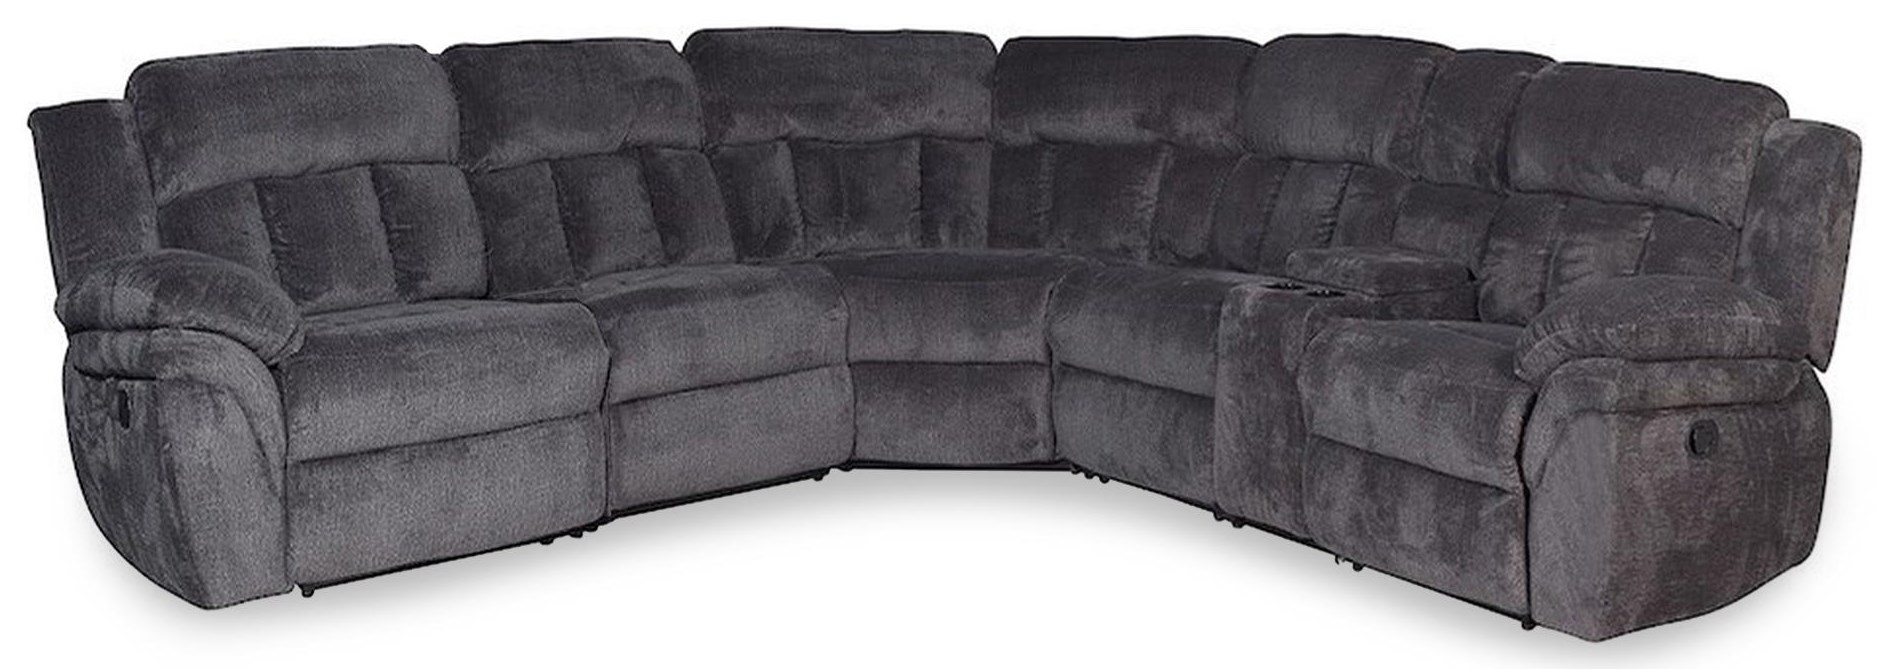 Cobb 6PC Reclining Sectional Sofa w/ Storage Cons at Rotmans